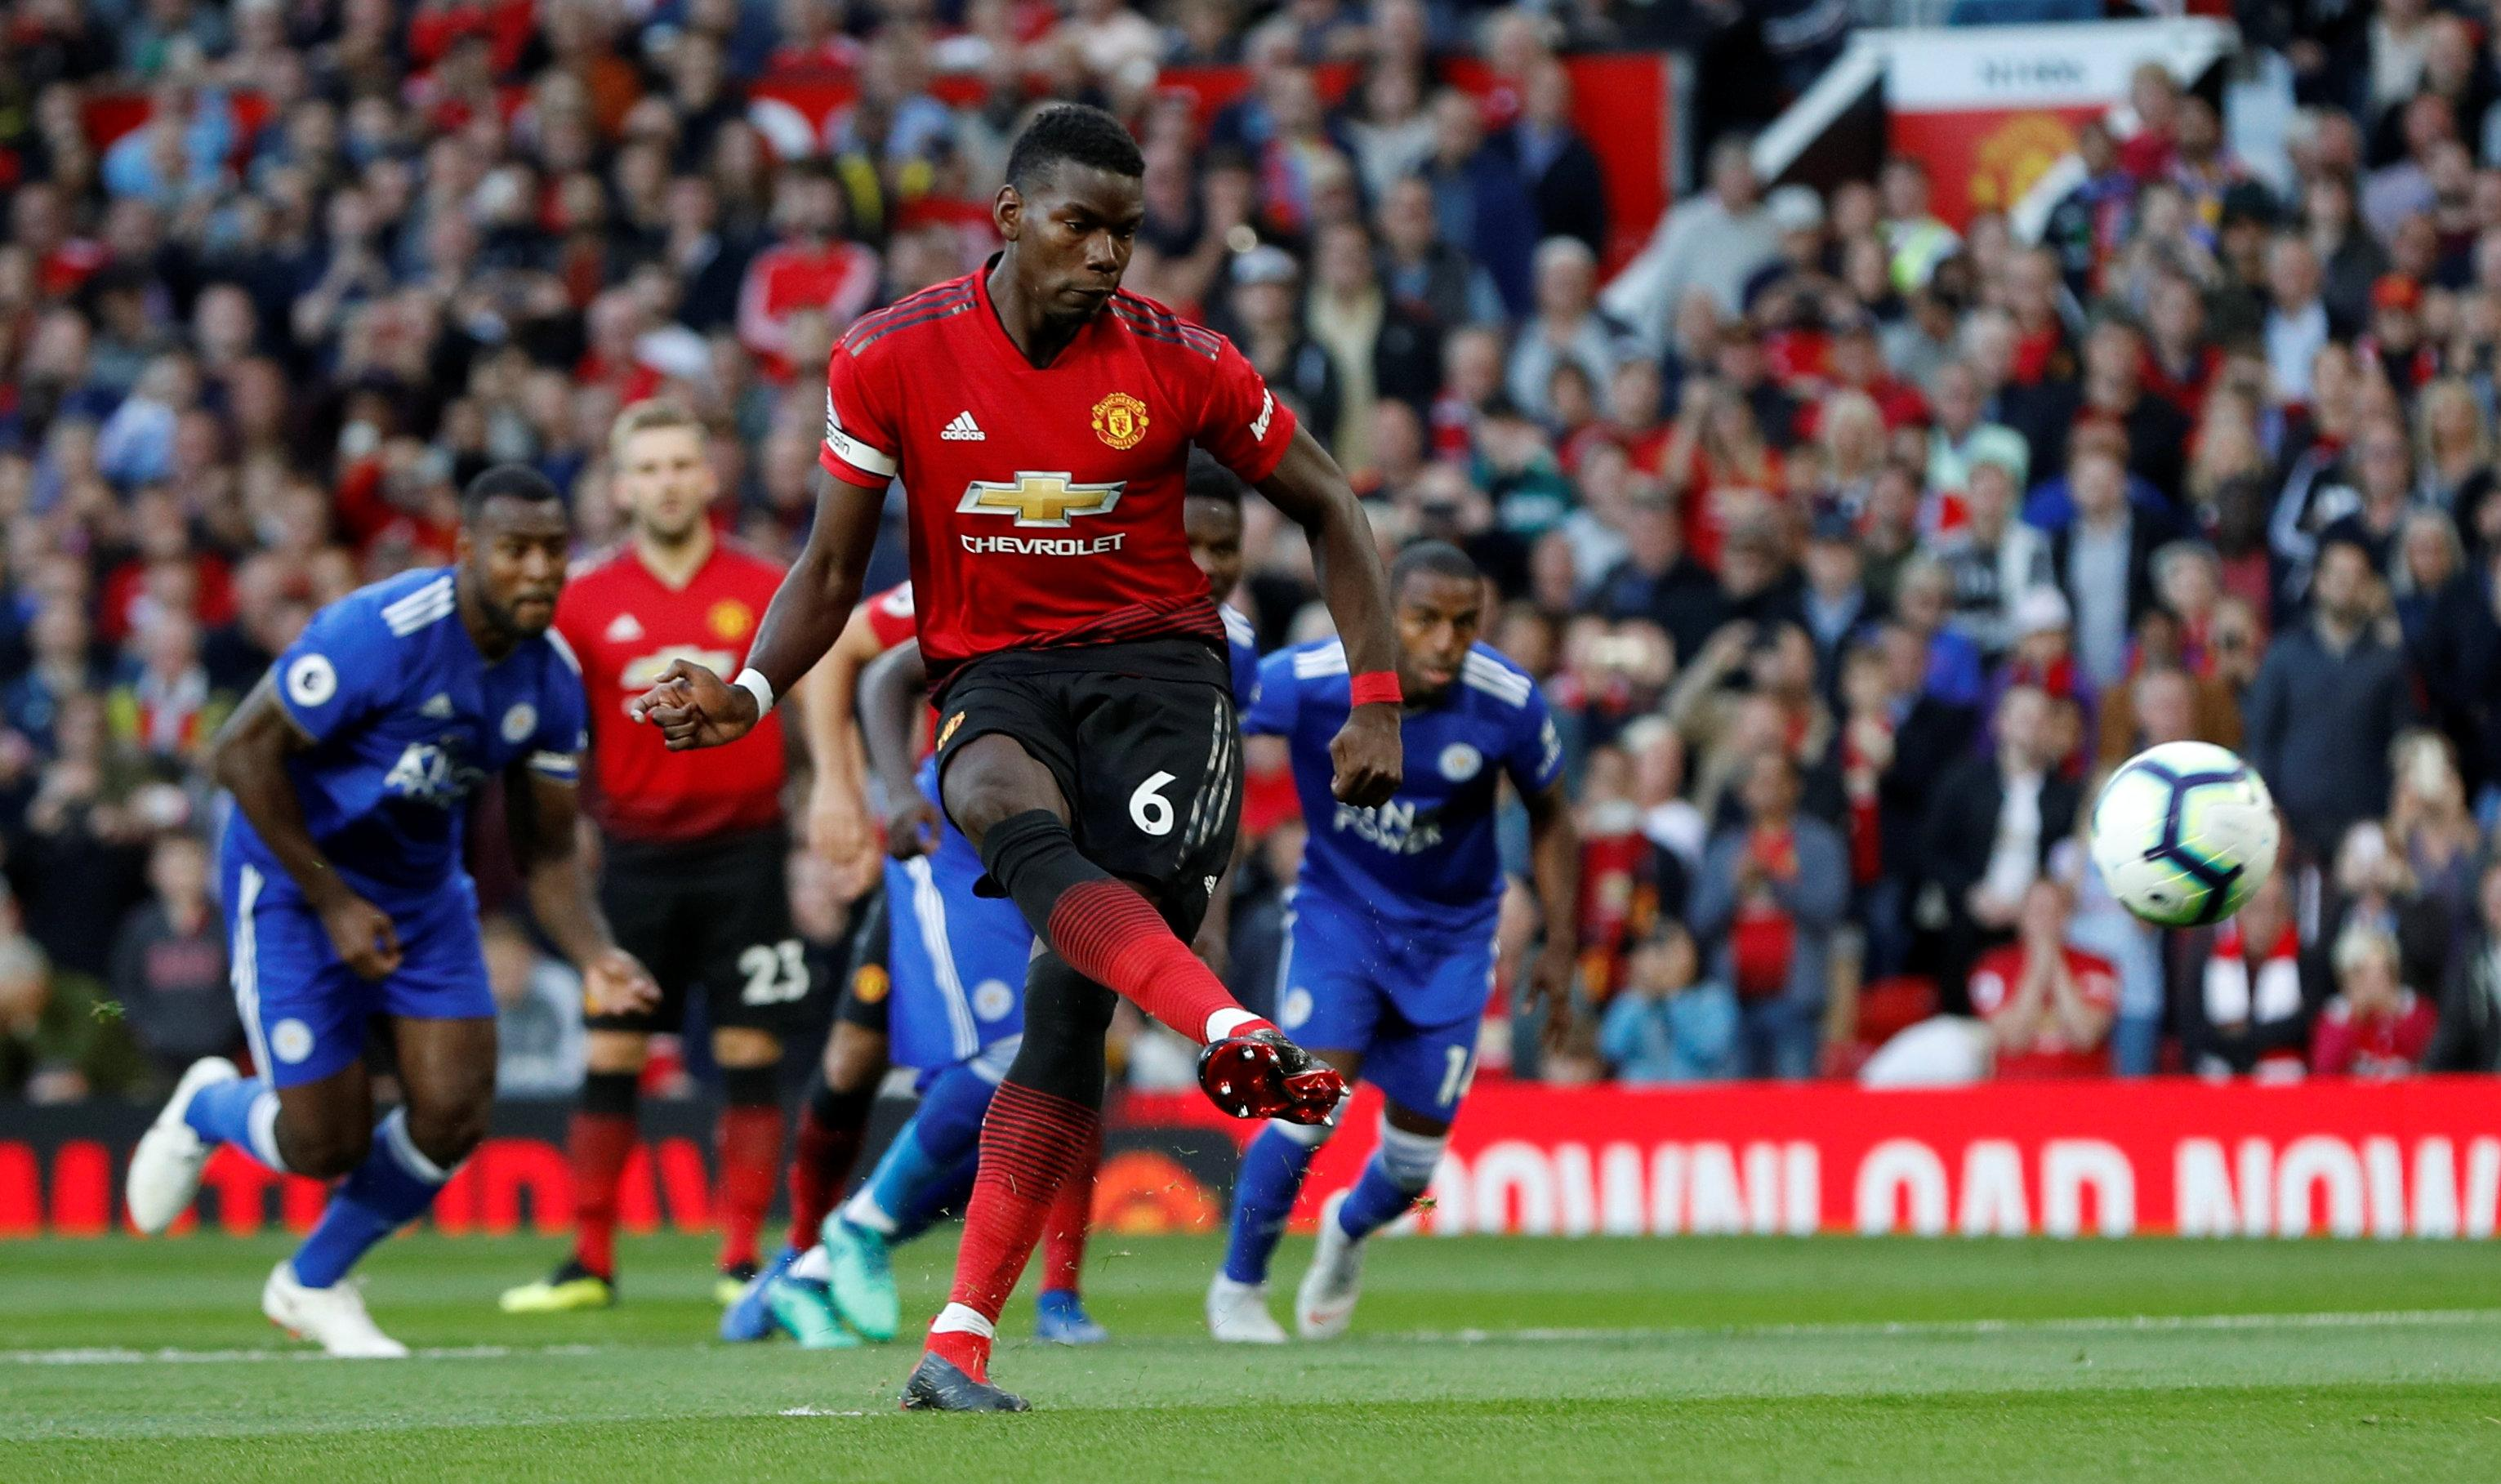 Paul Pogba scored early to get Manchester United off to the best possible start